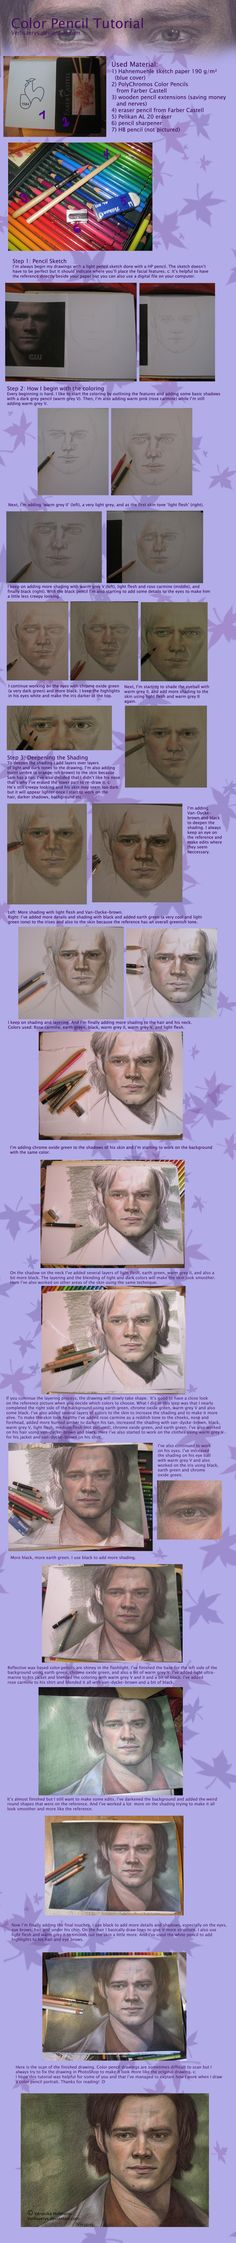 http://fc02.deviantart.net/fs70/f/2012/313/2/4/color_pencil_tutorial_by_verlisaerys-d5kh03n.jpg